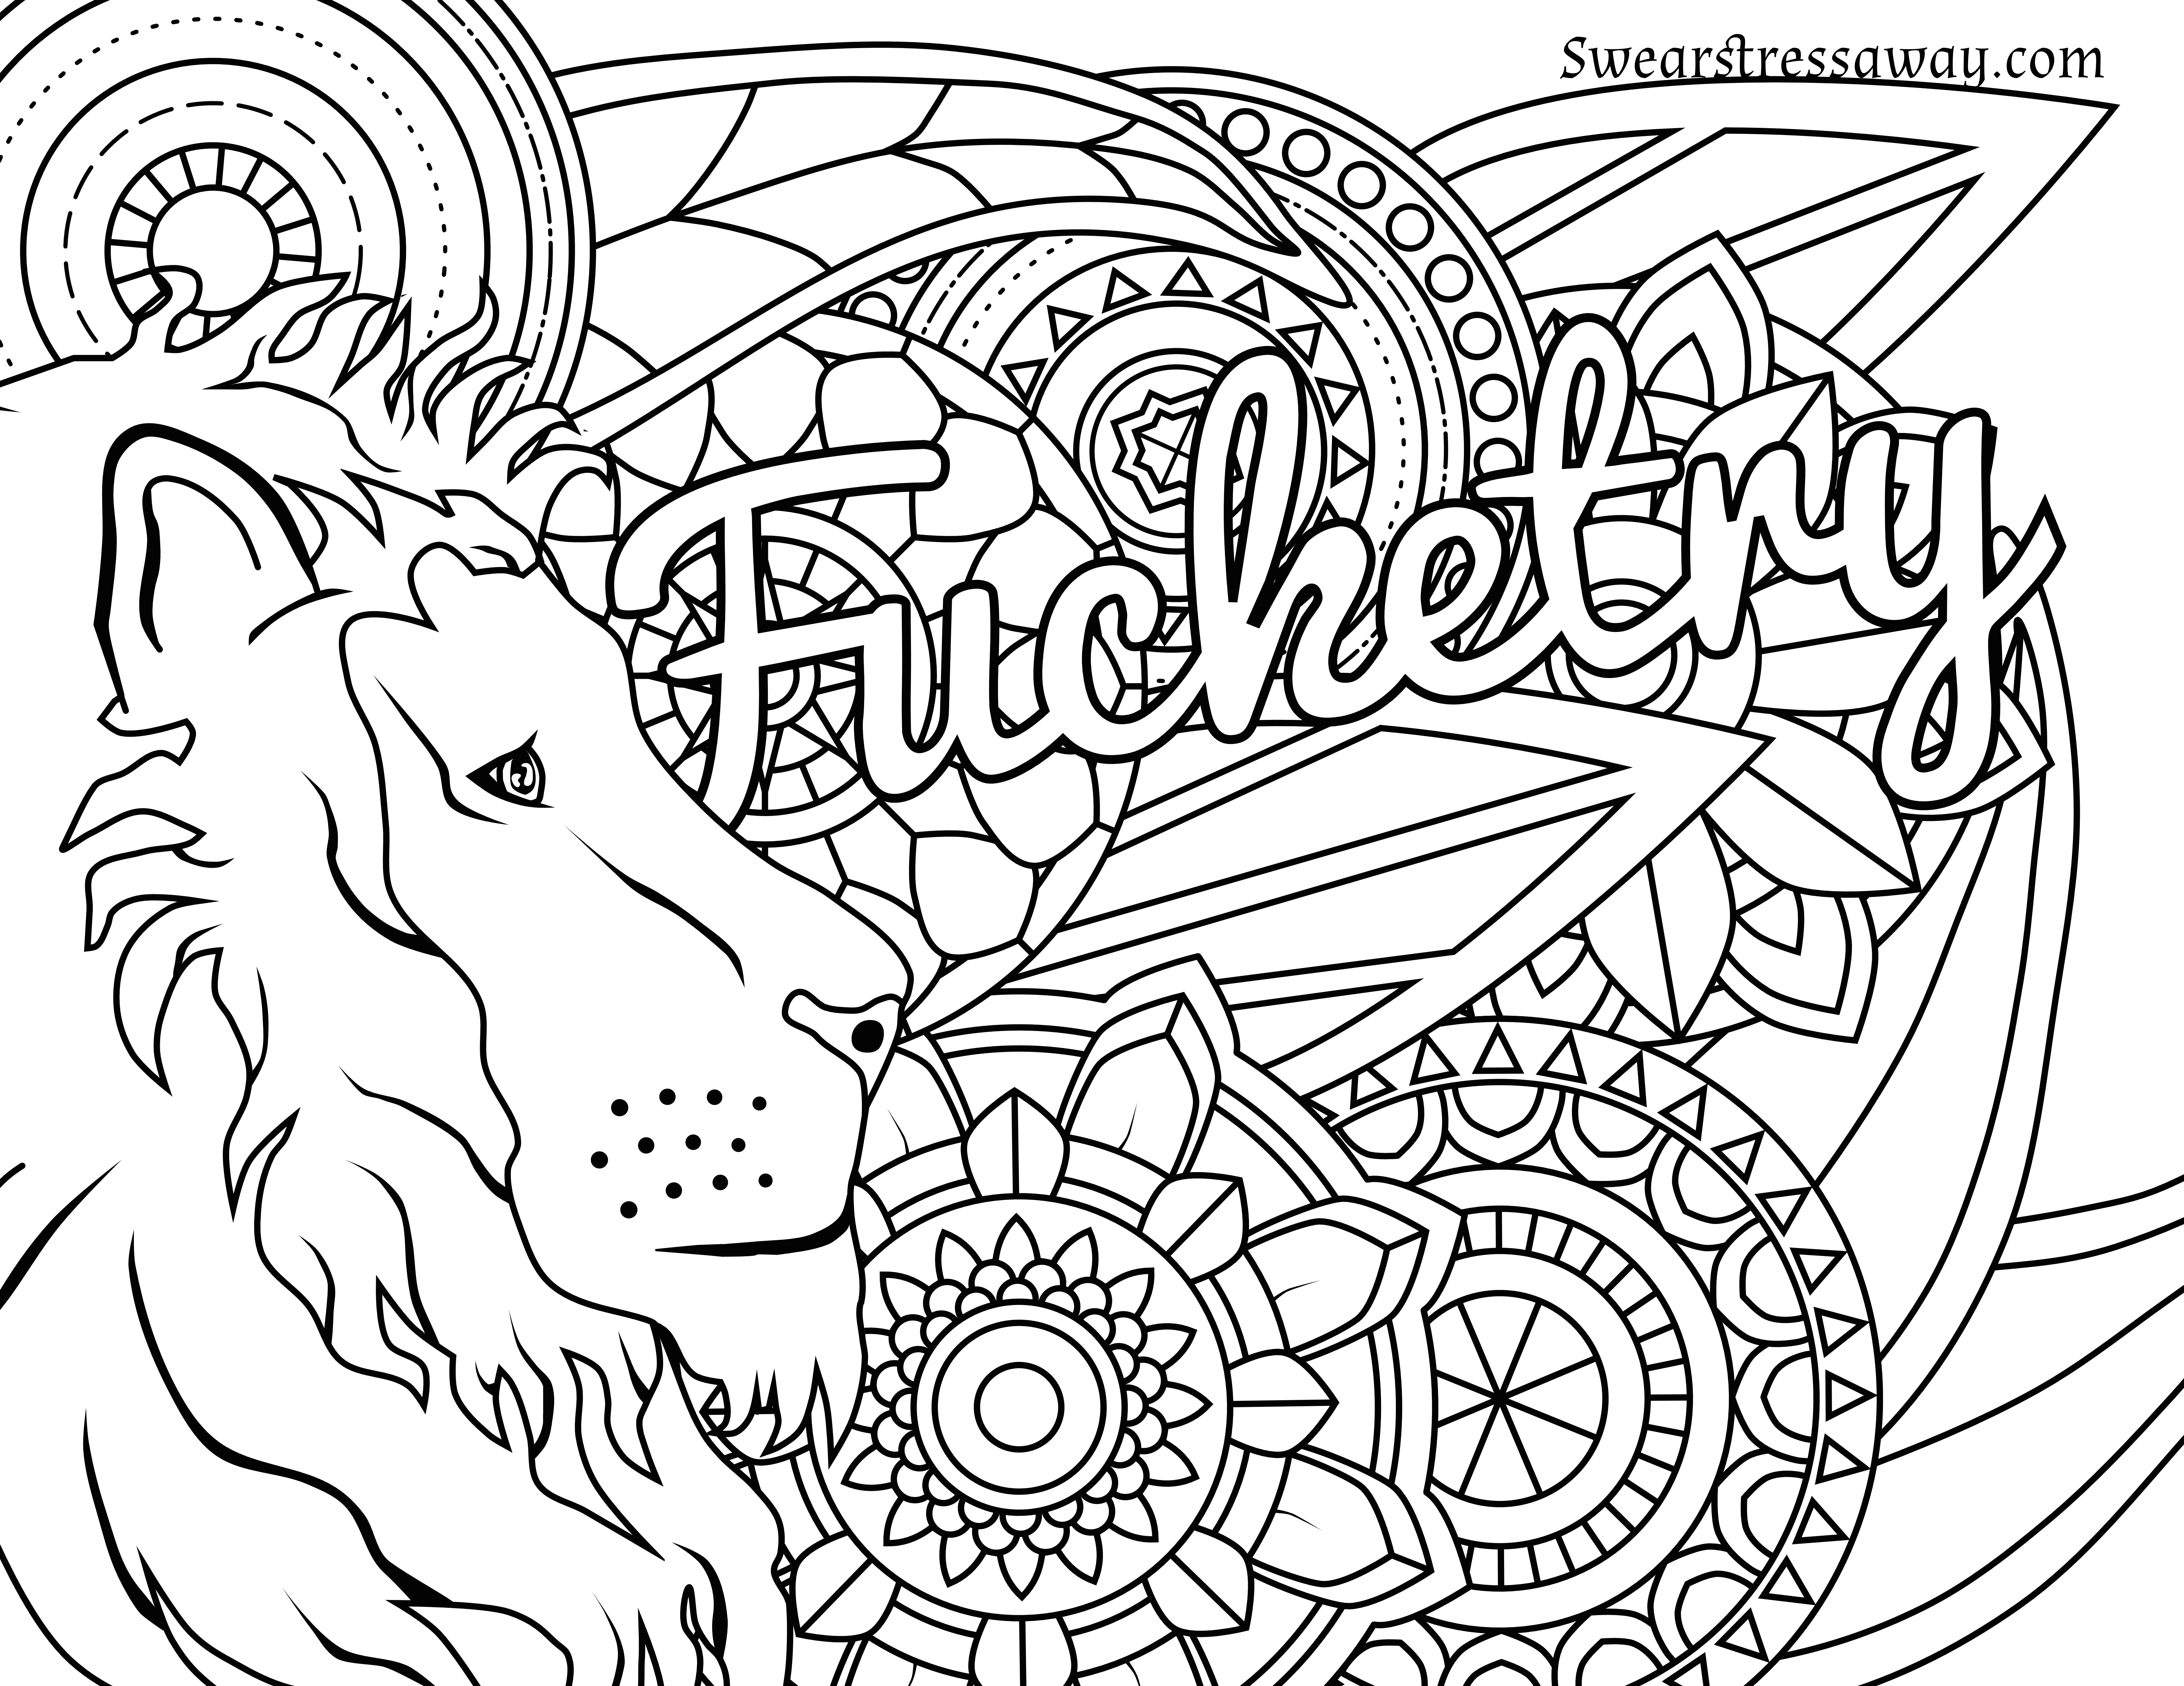 - Fucketry - Swear Word Coloring Page - Adult Coloring Page